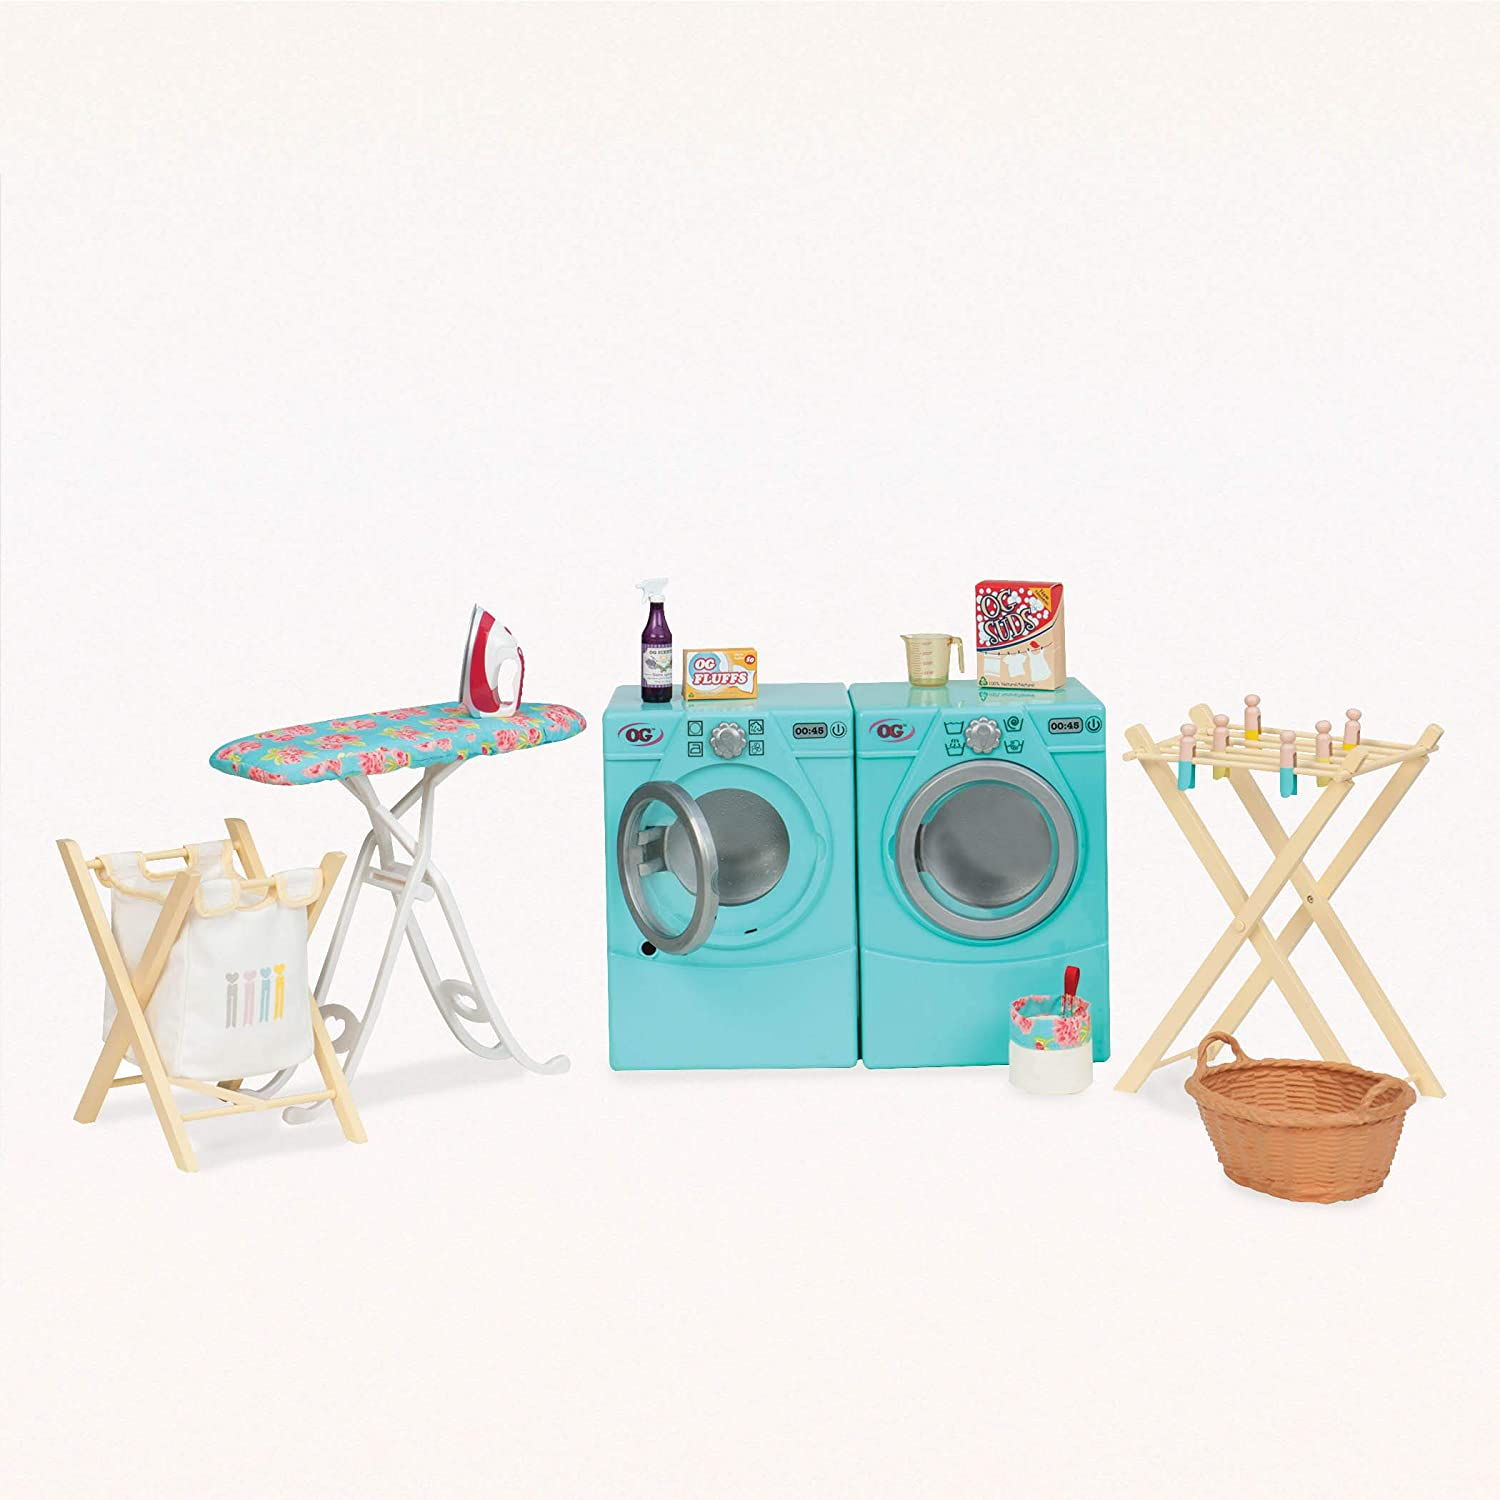 """Our Generation by Battat- Tumble & Spin Laundry Set for 18"""" Dolls- Toys, Clothes & Accessories for Girls 3-Year-Old"""